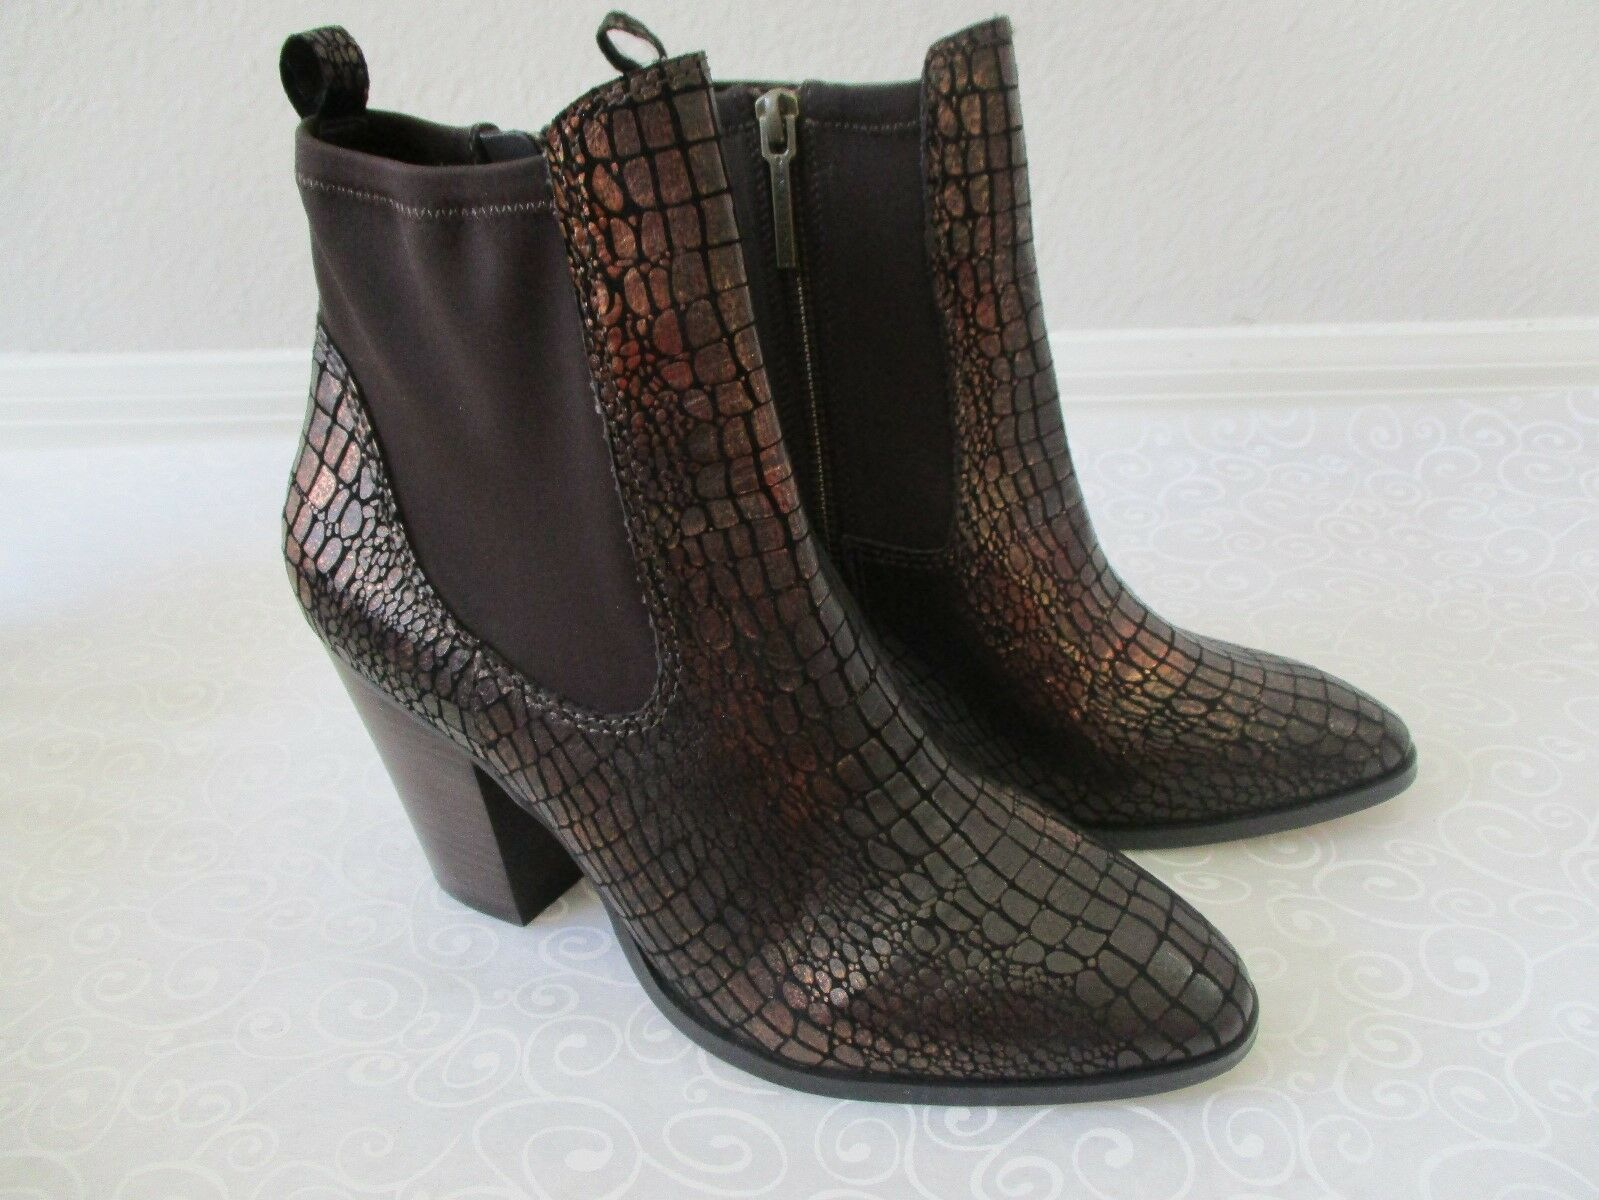 DONALD J PLINNER PEWTER METALLIC CROCCO ANKLE BOOTS SIZE 10 M - NEW